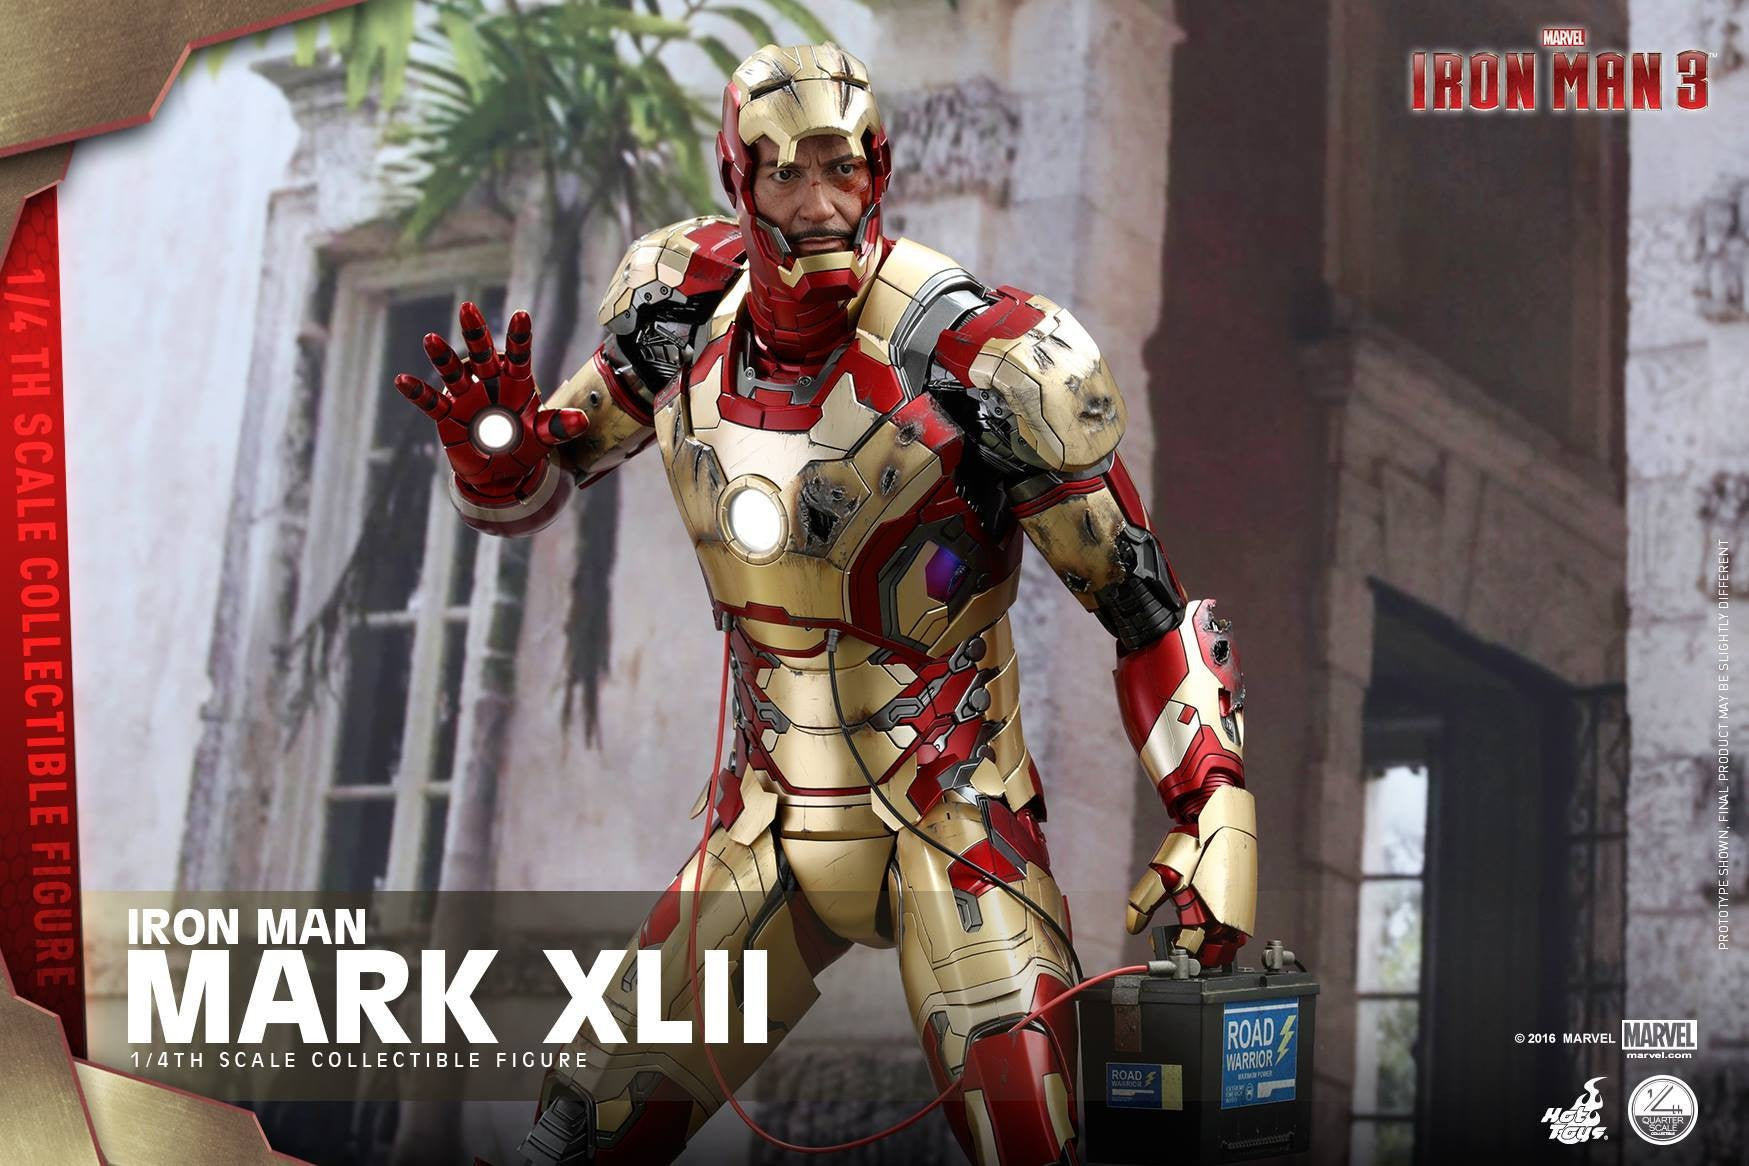 Hot Toys - QS007 - Iron Man 3 - 1/4th scale Mark XLII - Marvelous Toys - 9